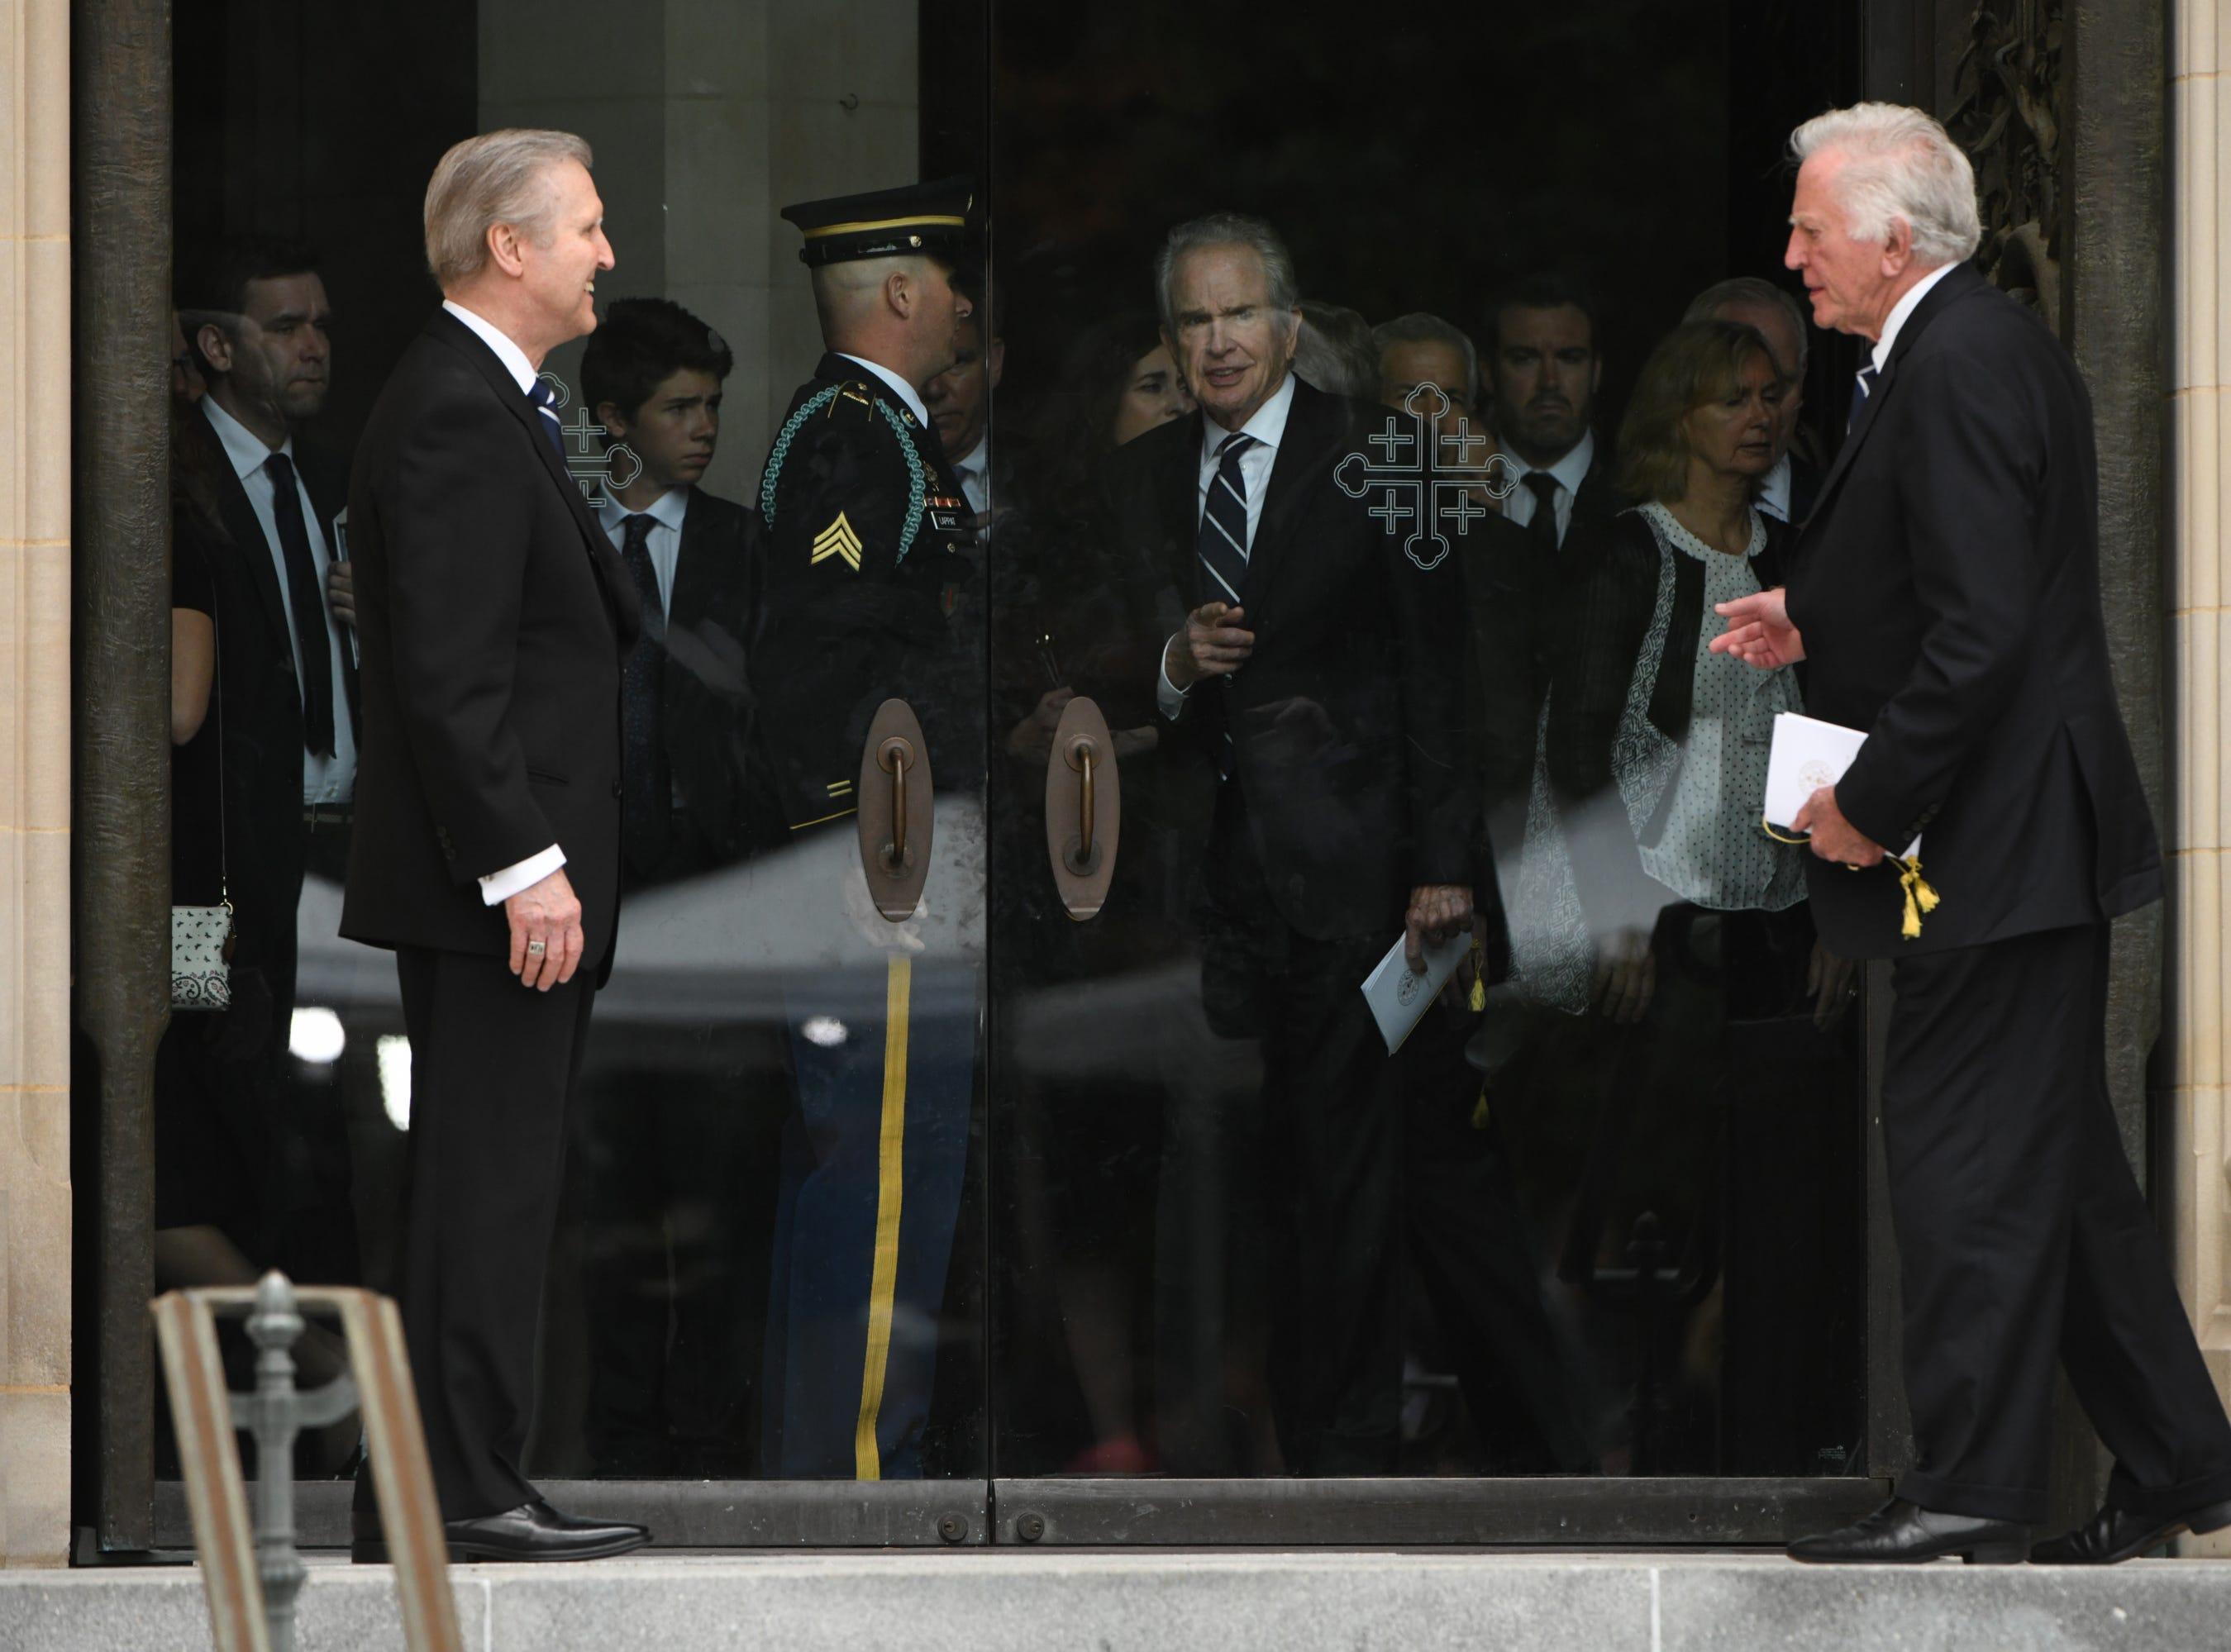 Warren Beatty, center,  greets Former Senator Gary Hart, right, and former Secretary of Defense William Cohen, left, as he leaves the memorial service for John McCain on Saturday.